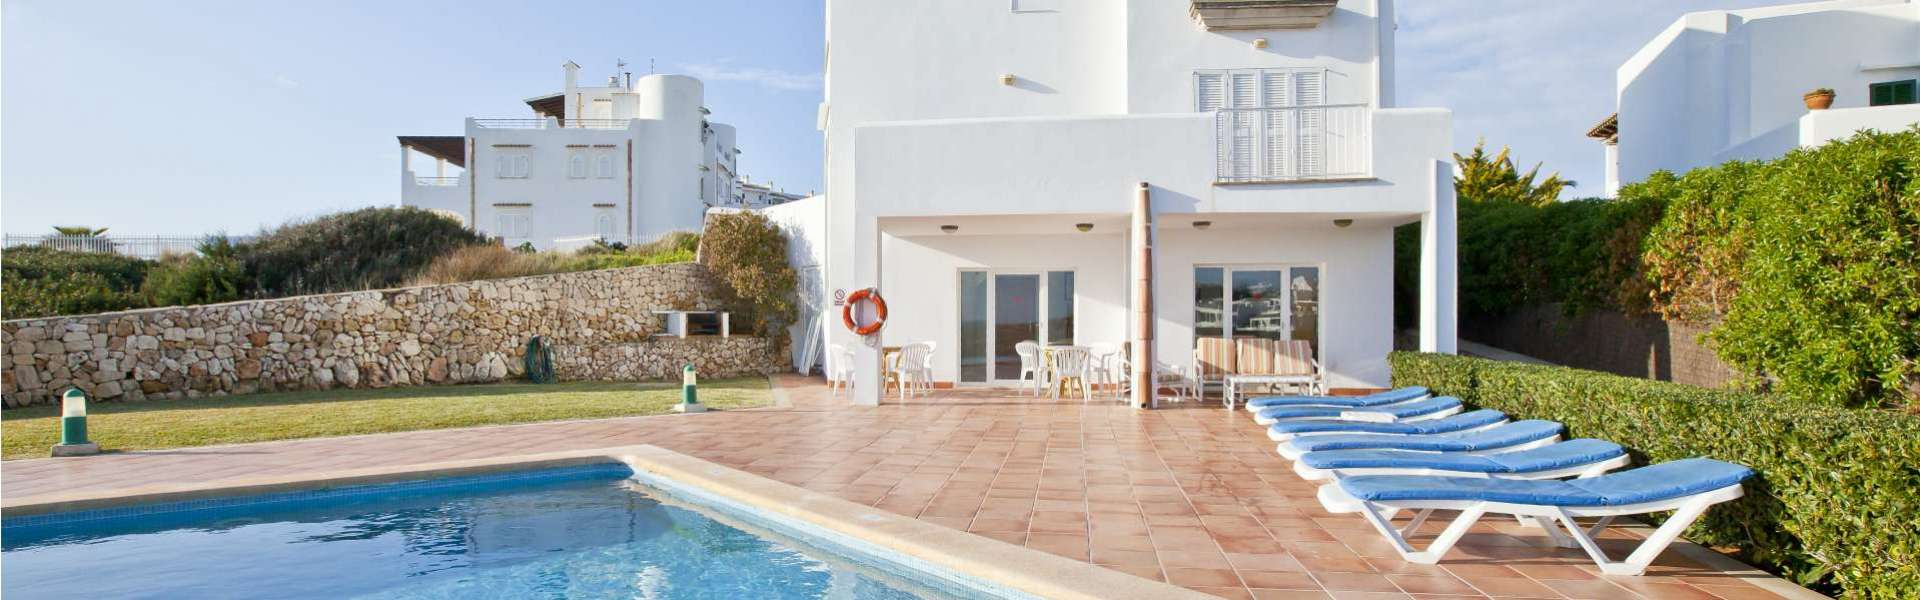 Cala d'or - Villa in first sealine for sale